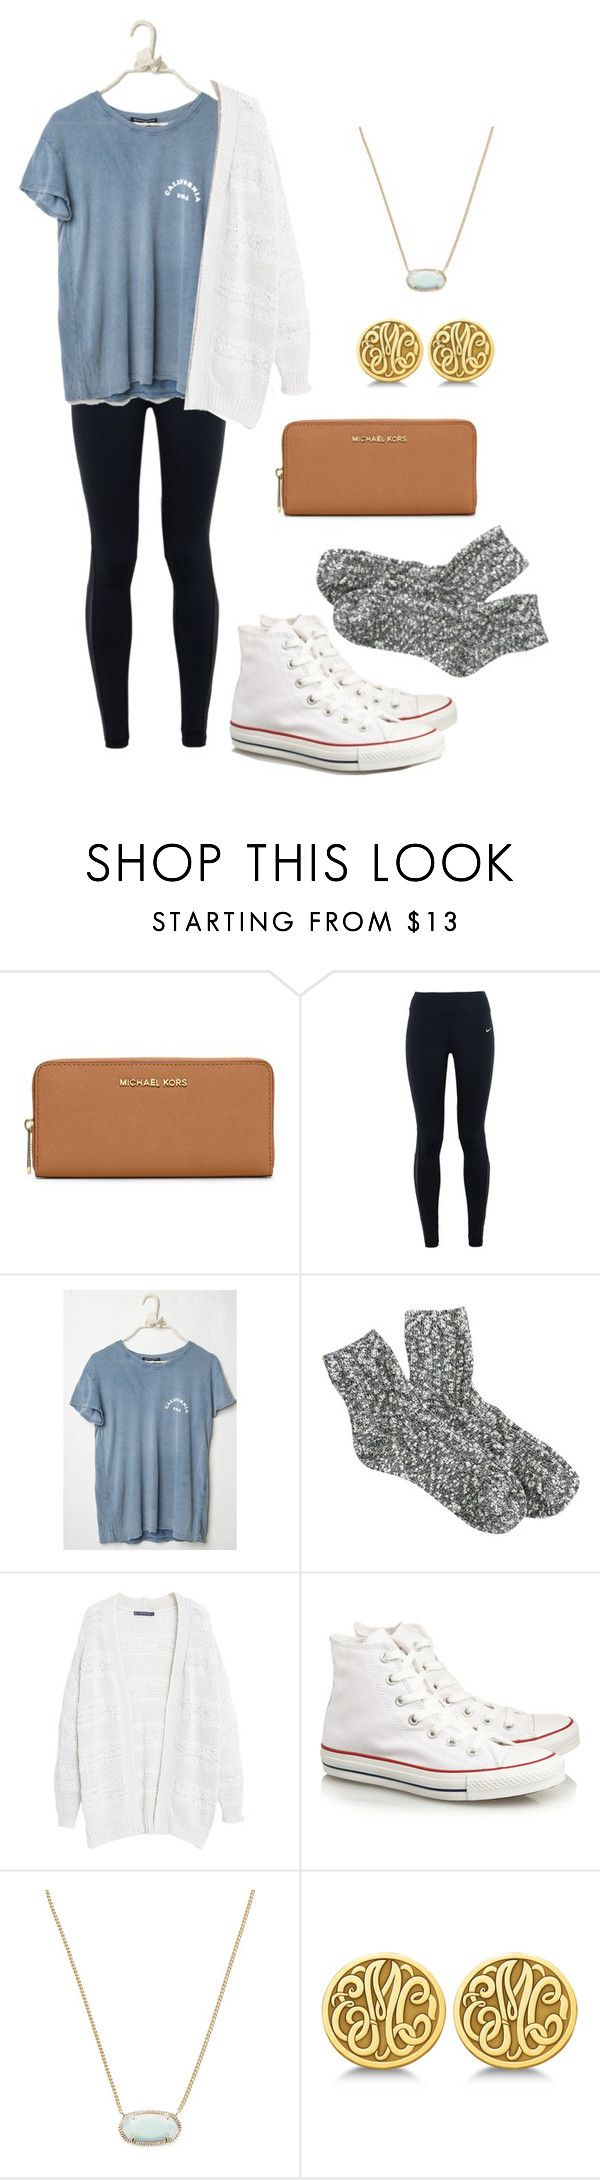 Too cute for school by vineyard-vines-love ❤ liked on Polyvore featuring MICHAEL Michael Kors, NIKE, J.Crew, Violeta by Mango, Converse, Kendra Scott and Allurez